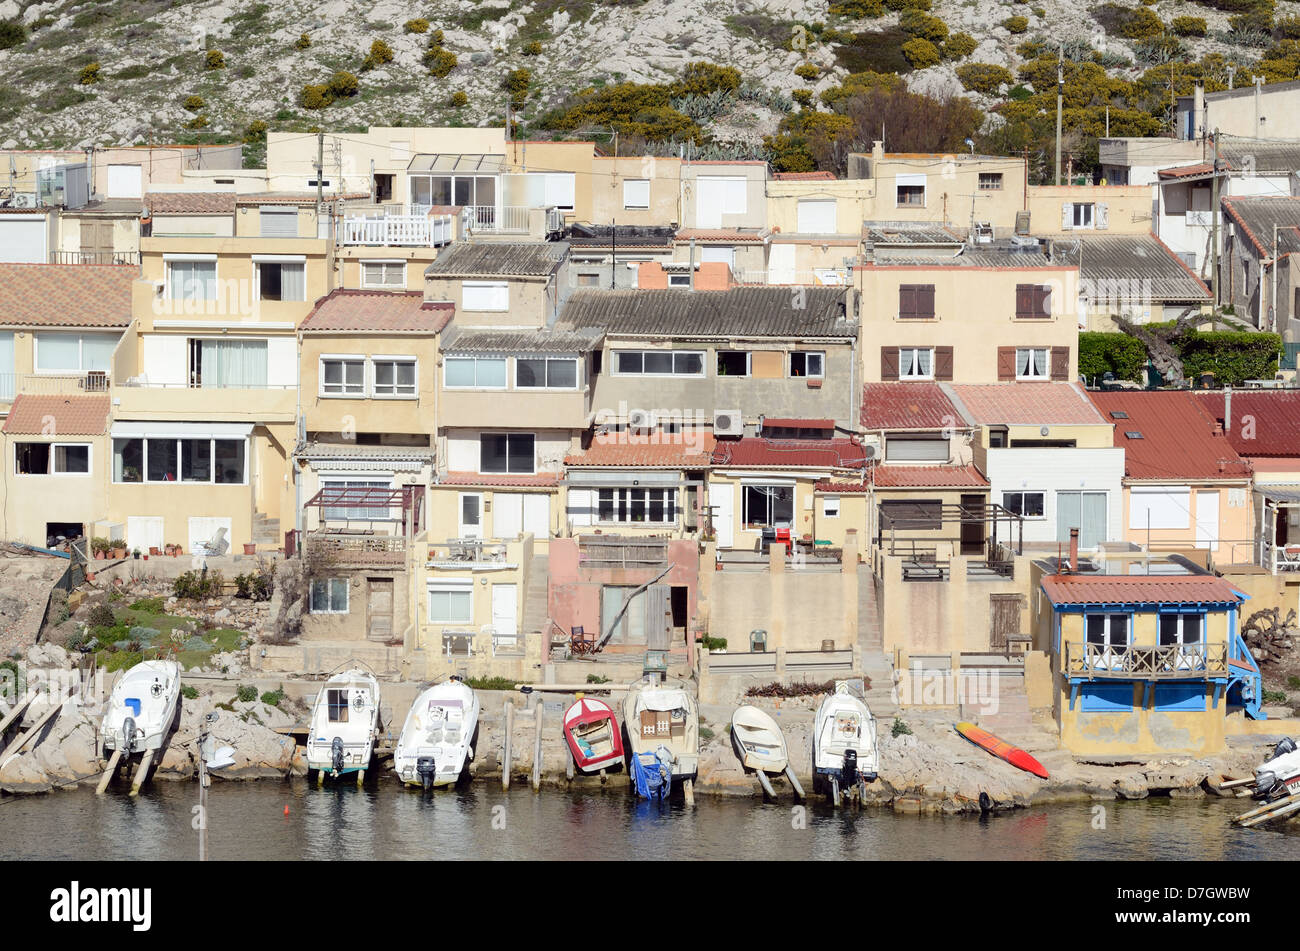 Fishermen's Houses at Les Goudes Marseille France Stock Photo